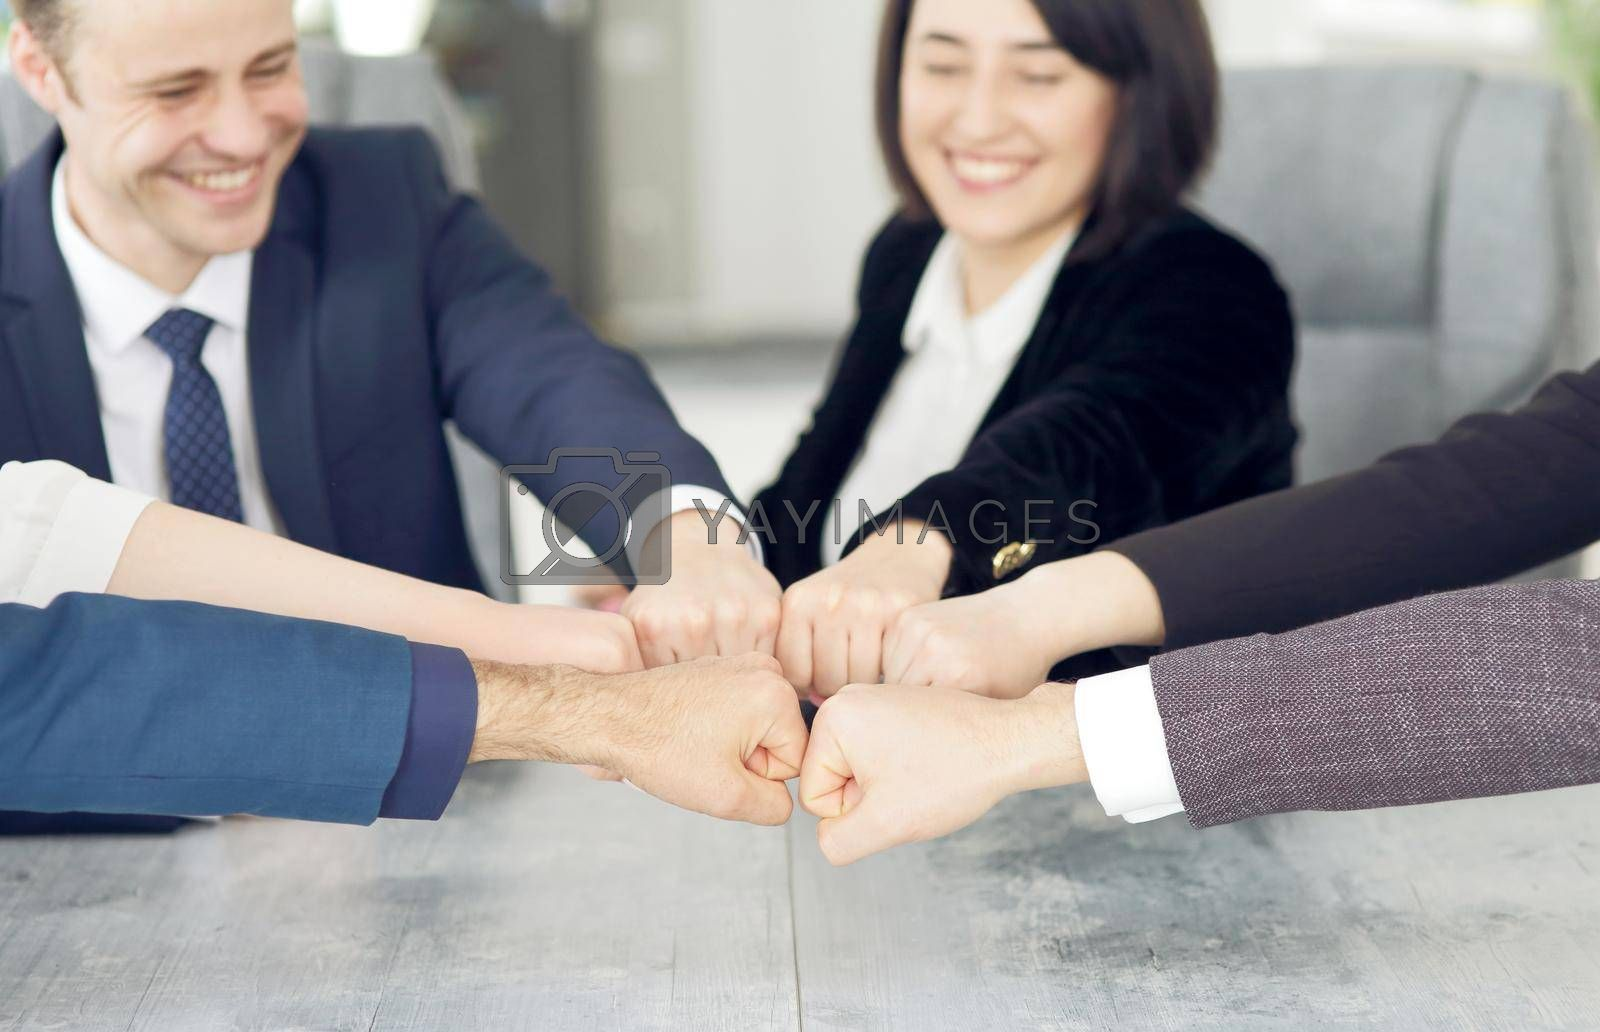 Royalty free image of Unity and teamwork concept of young business people folding their hands together by selinsmo